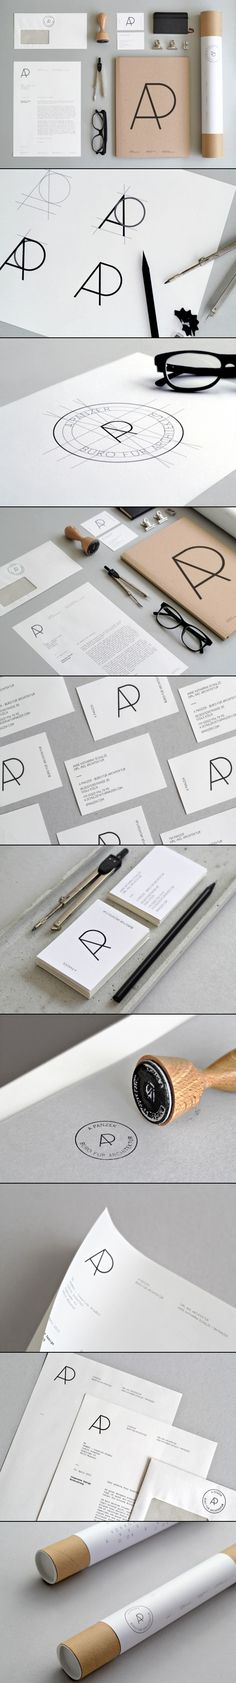 YAGWYD – Creative Studio | #stationary #corporate #design #corporatedesign #identity #branding #marketing < repinned by www.BlickeDeeler.de | Take a look at www.LogoGestaltung-Hamburg.de